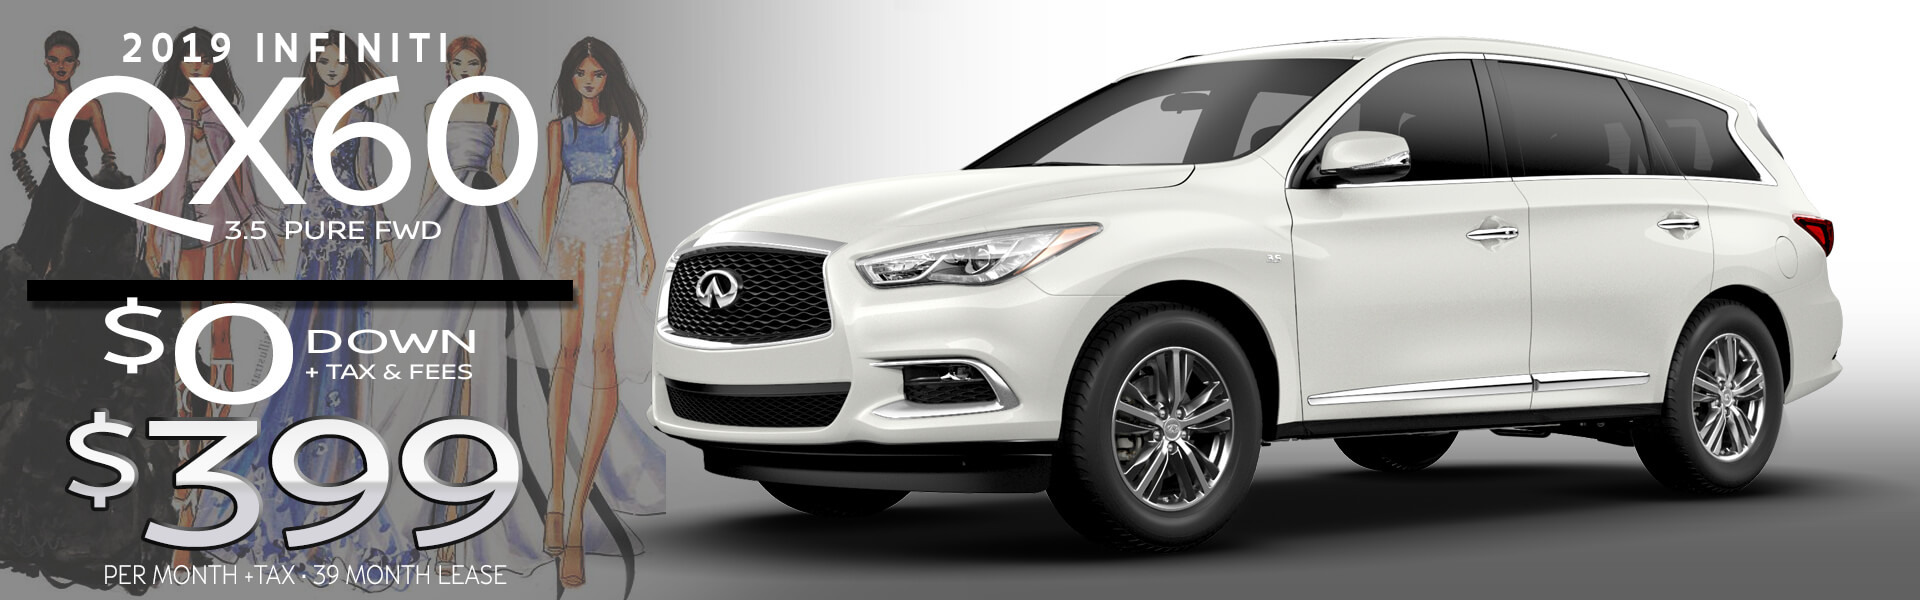 Qx60 Hp Offer